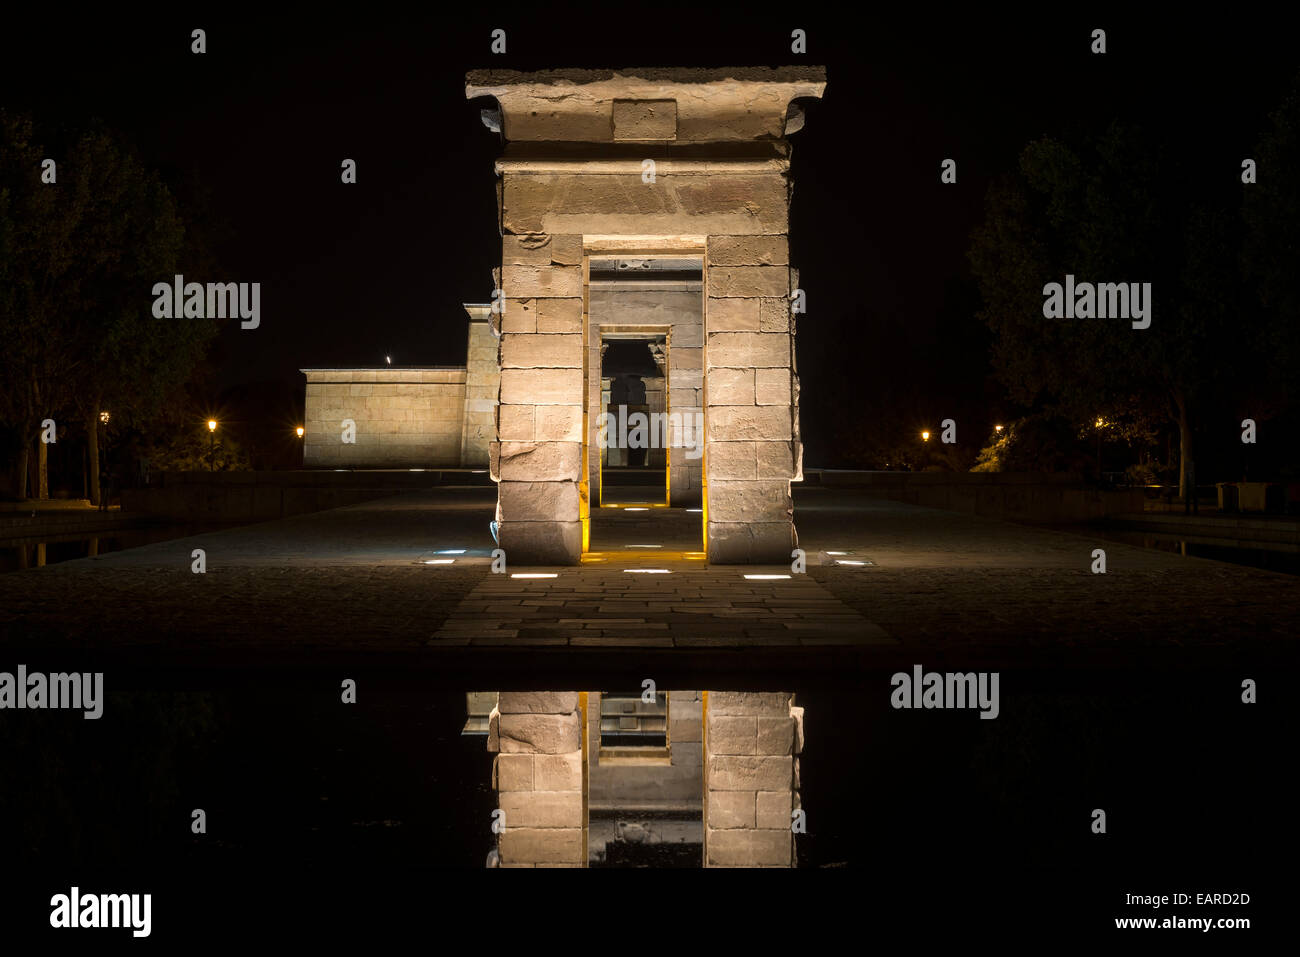 Debod Temple at night with suggestive lights and reflections - Stock Image